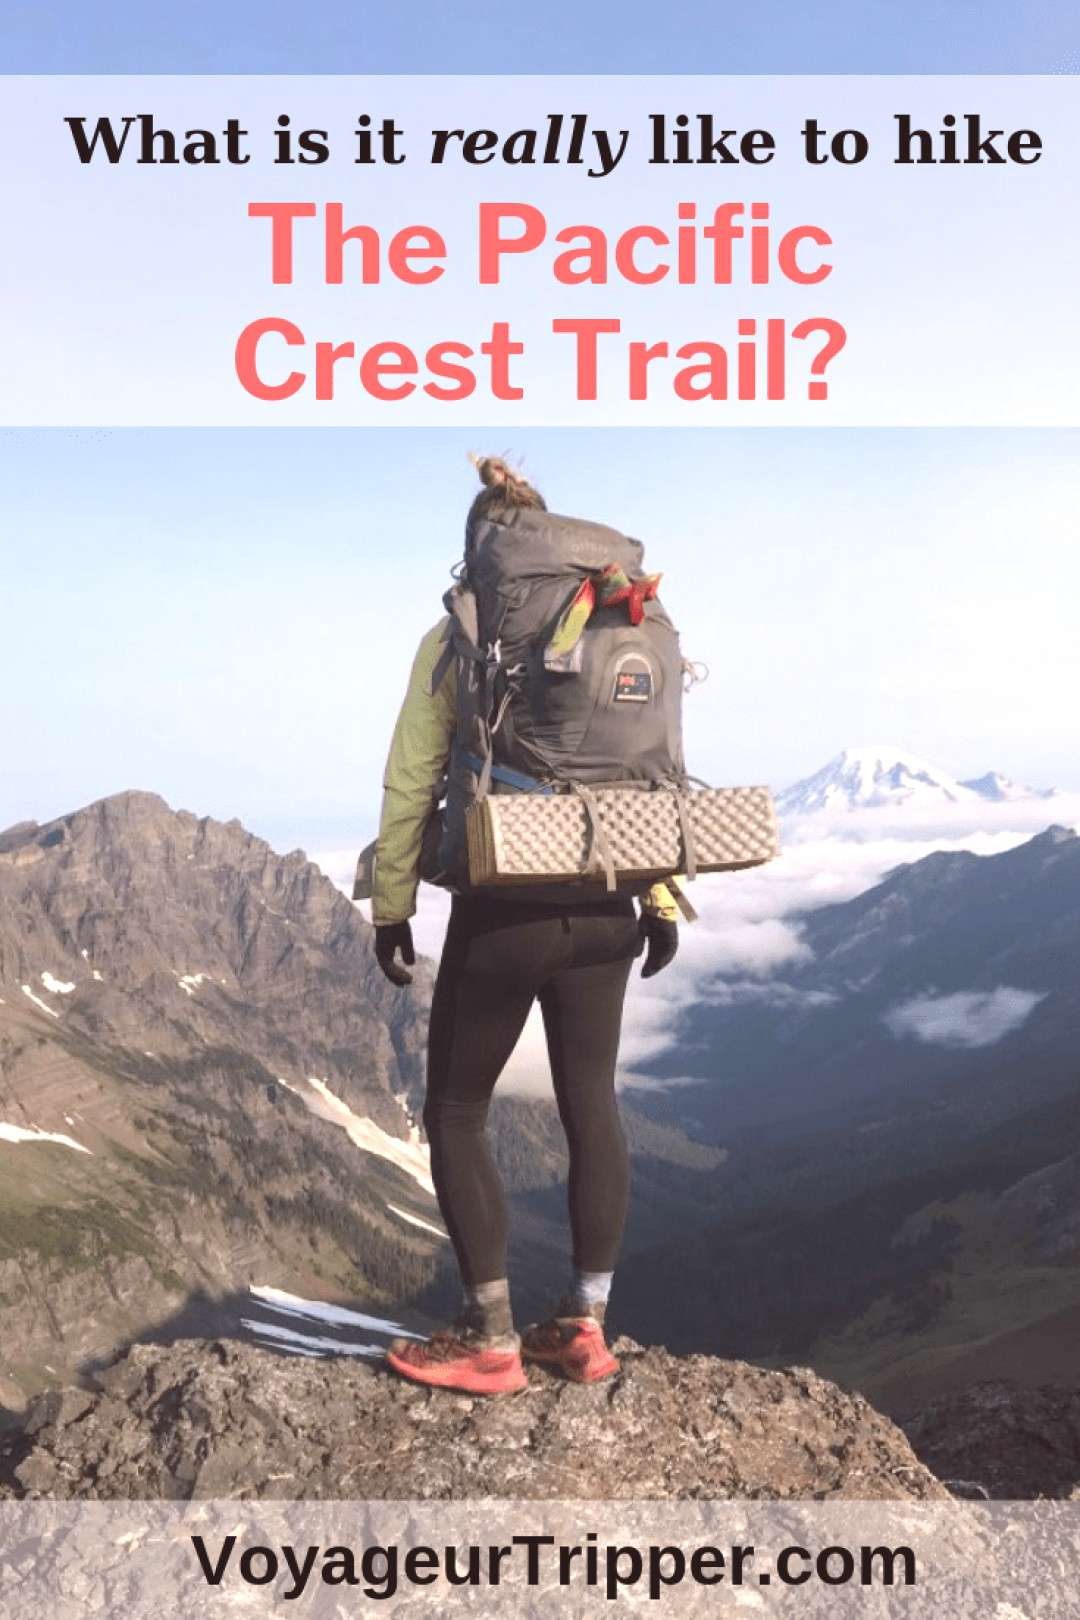 Expert Interview What is it really like to hike the Pacific Crest Trail? - Voyageur Tripper